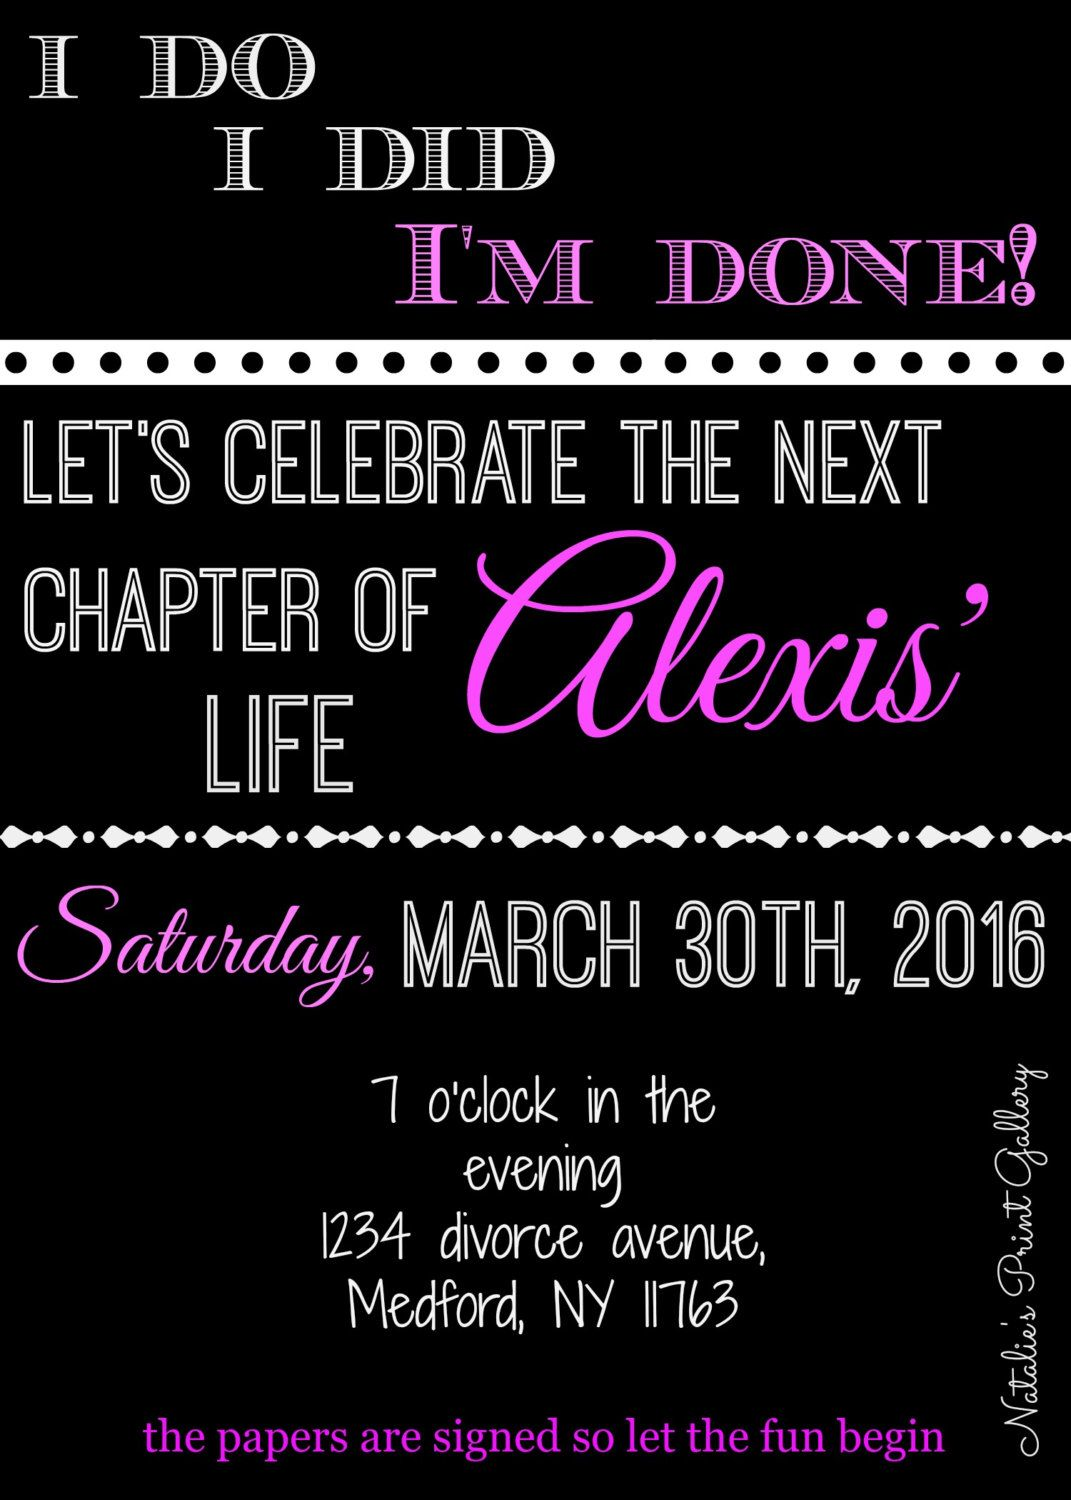 Pin by Courtney Jeffries on divorce party | Pinterest | Divorce ...